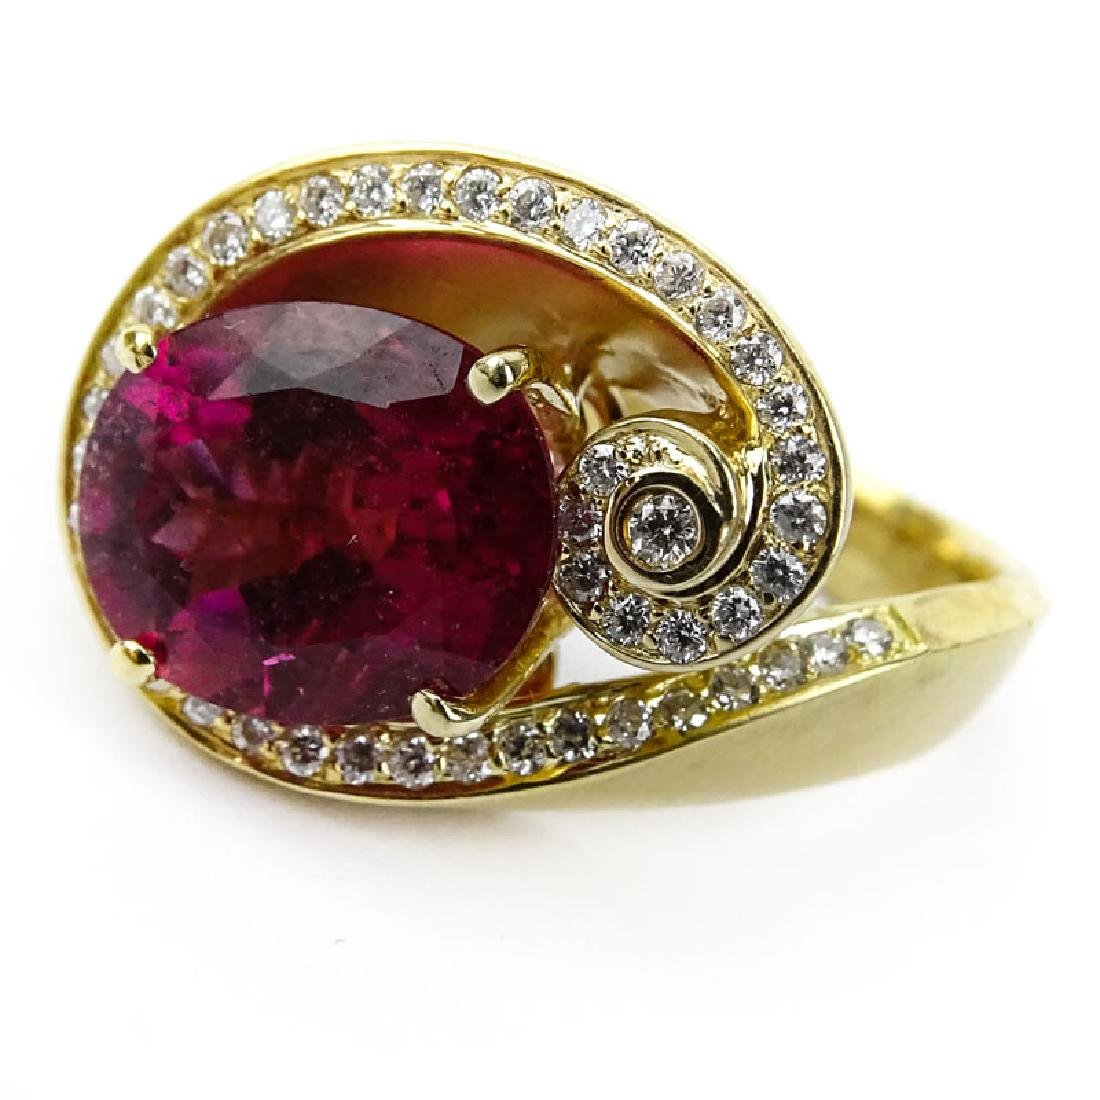 Vintage Oval Cut Rubelite Tourmaline, Diamond and 18